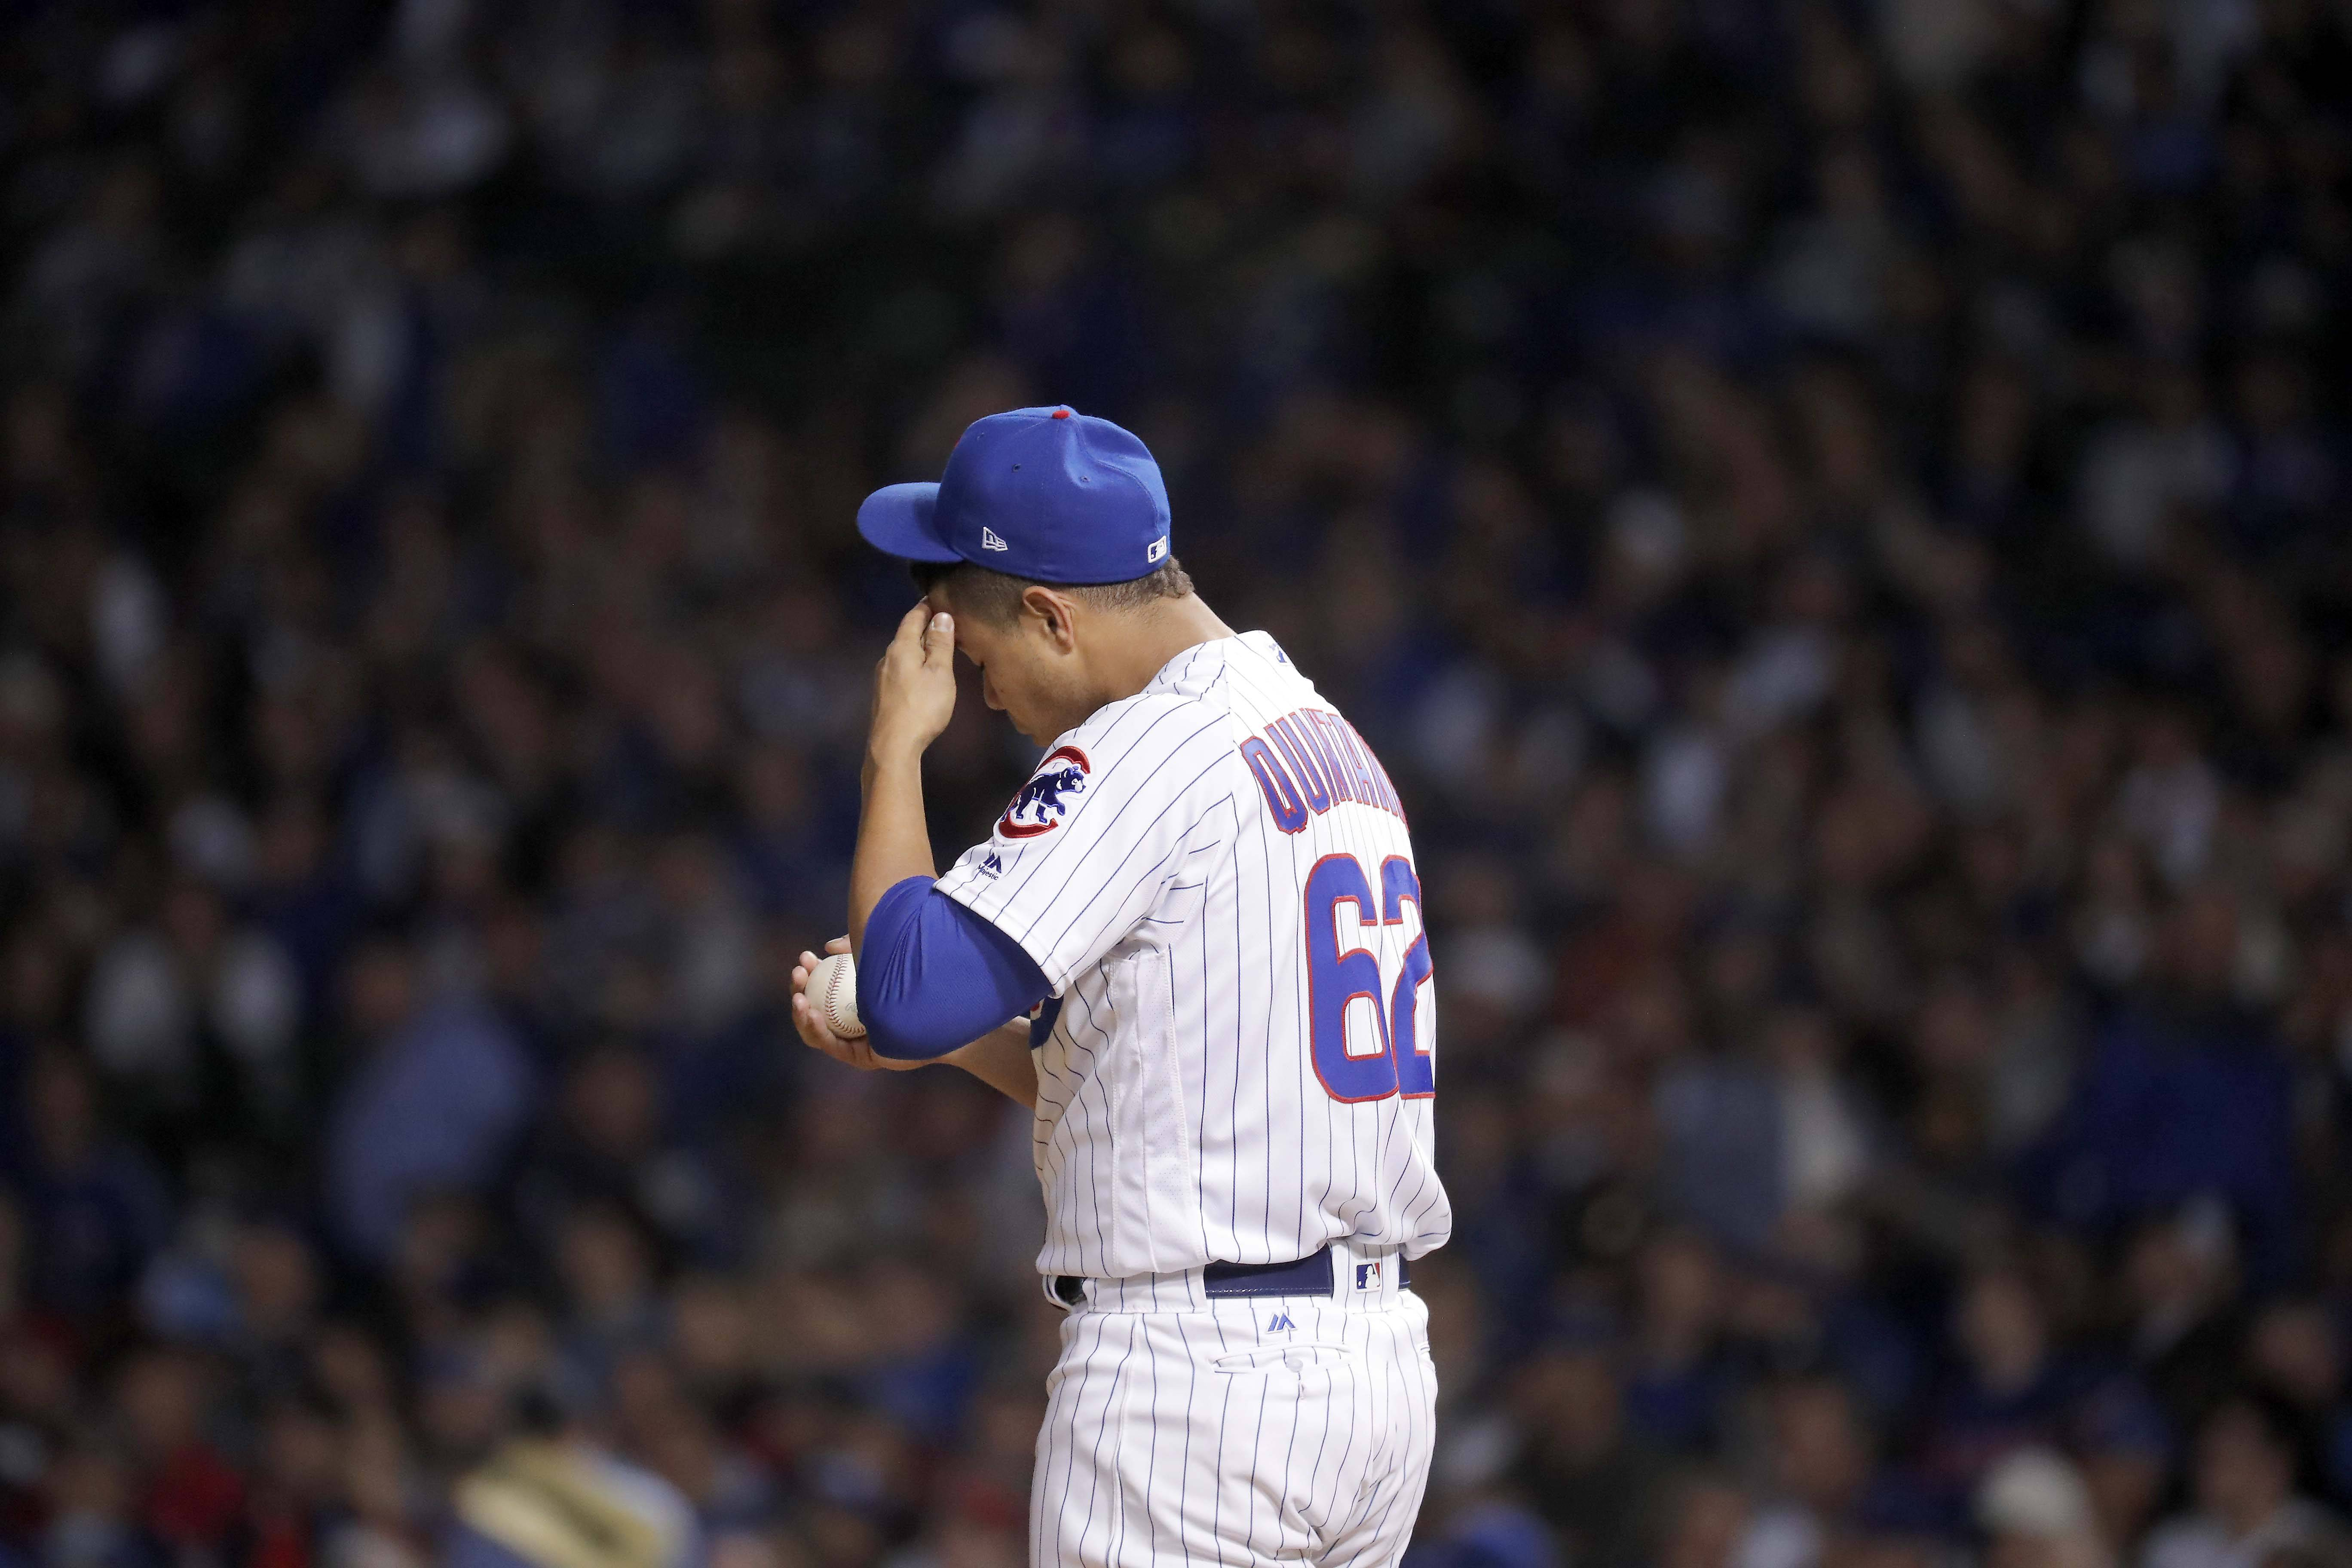 Steve Lundy/slundy@dailyherald.com Chicago Cubs starting pitcher Jose Quintana tries to collect himself in the third inning during Game 5 of the National League championship series at Wrigley Field in Chicago on Thursday night.